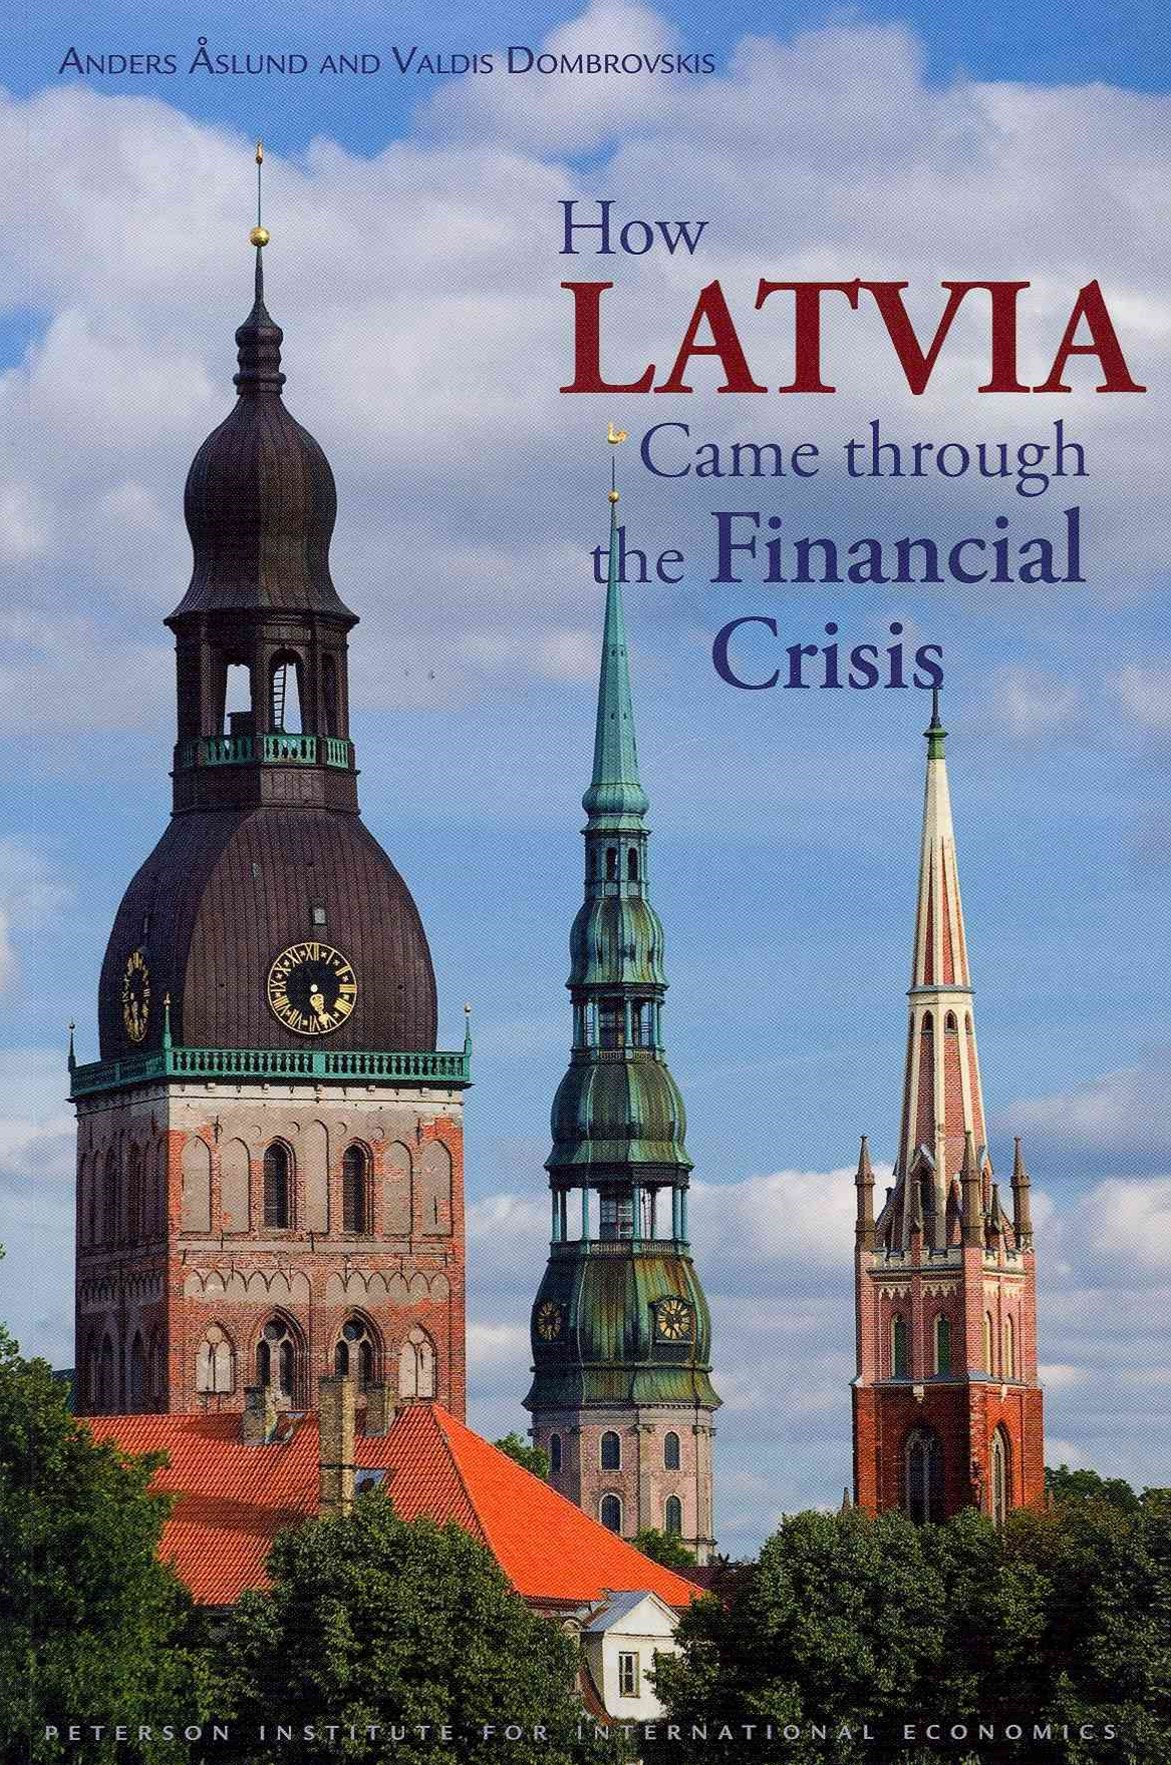 How Latvia Came through the Financial Crisis